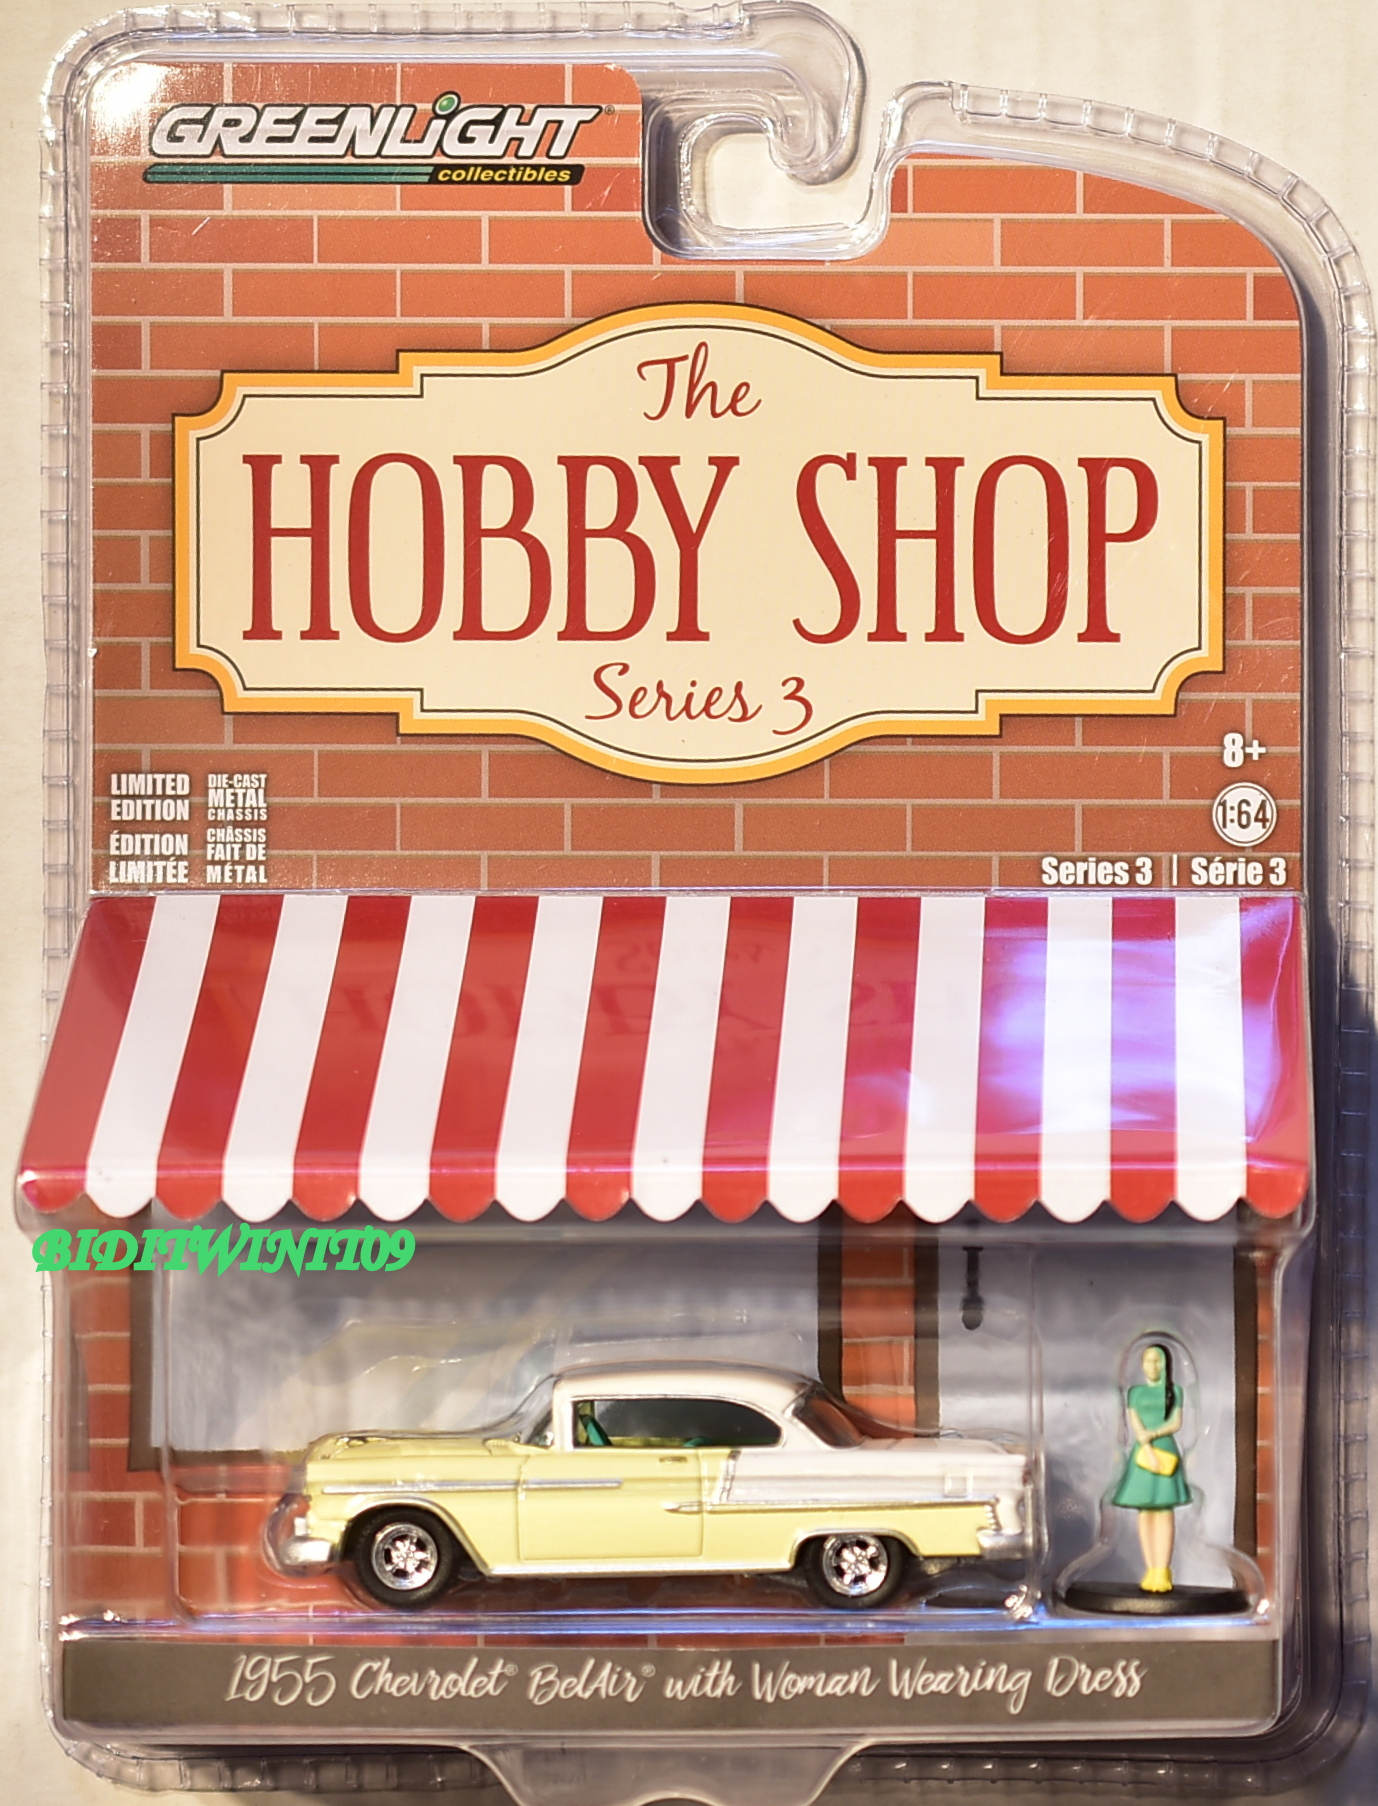 GREENLIGHT 2018 HOBBY SHOP 1955 CHEVROLET BELAIR WITH WOMAN WEARING DRESS